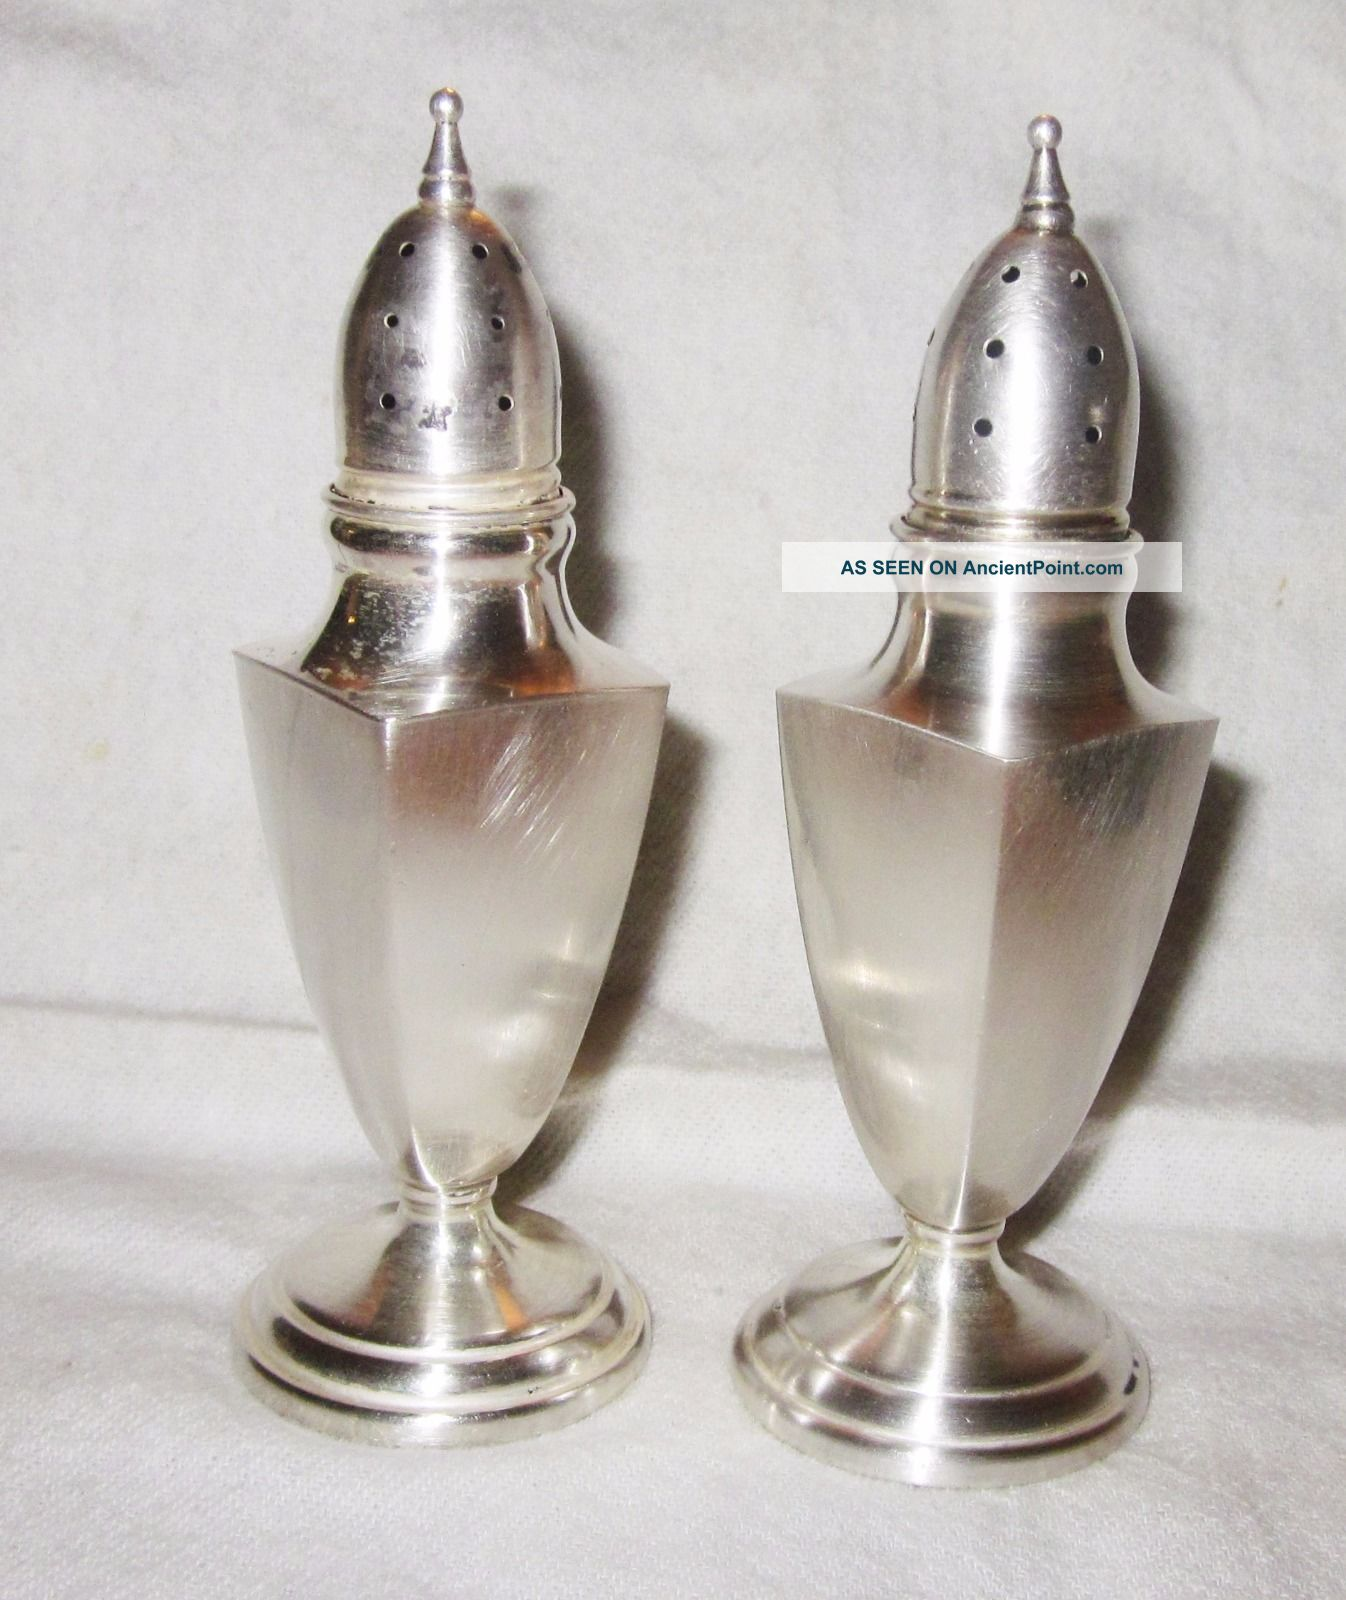 2 Vintage Sterling Silver Salt & Pepper Shakers Mueck Cary Co 67.  9 Grams Salt & Pepper Shakers photo